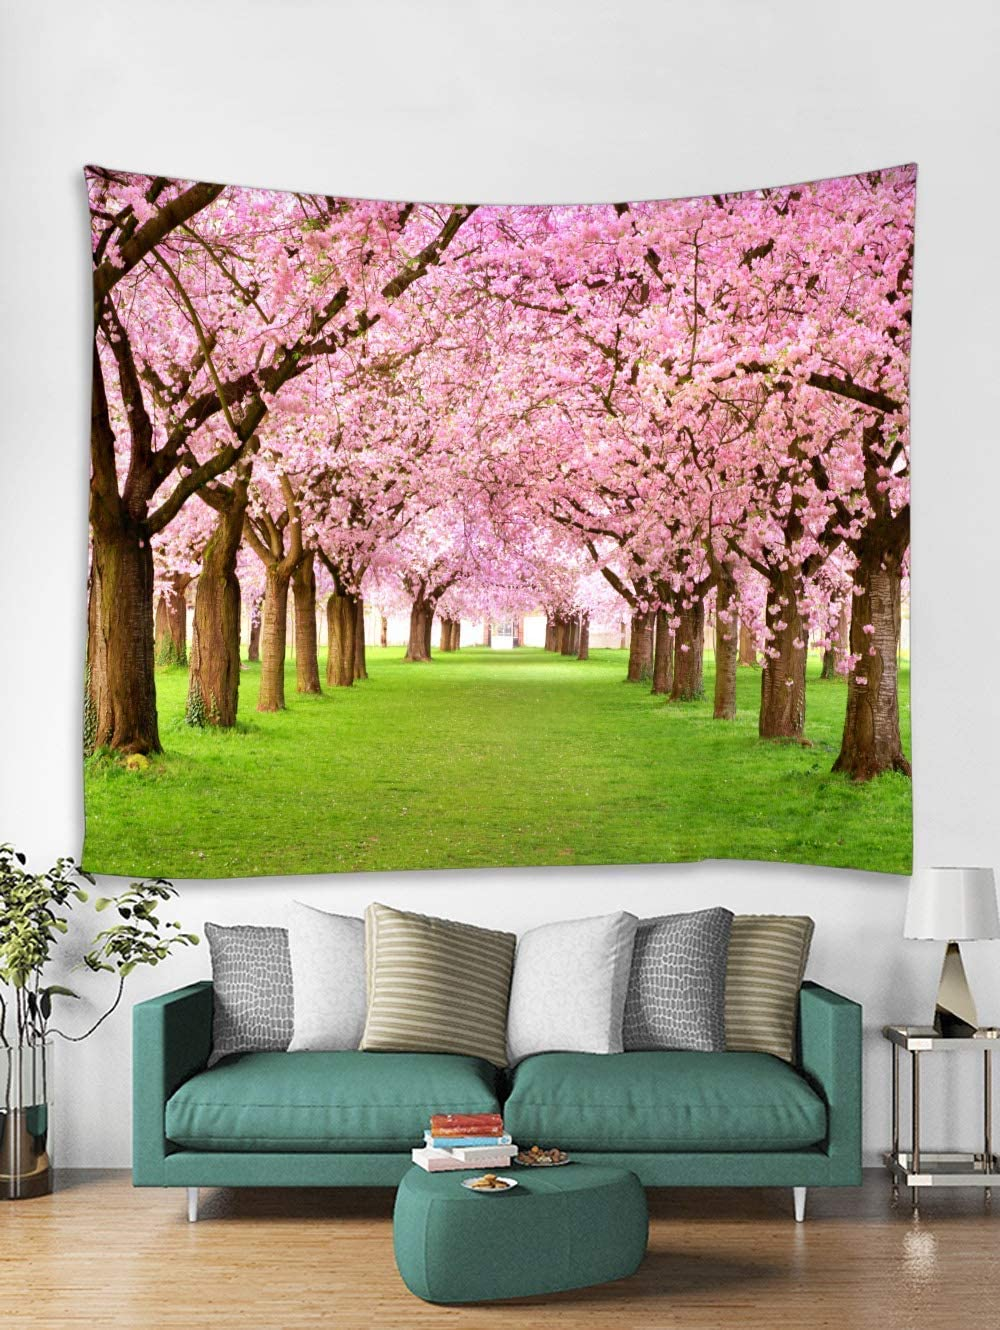 Spring Living Room Tapestry Large, Asian Cherry Flower Tree Woodland Scenic Tapestries Landscape Wall Hanging Fabric for Home Bedroom Dorm Decor Wall Art Blanket, 71 x 90